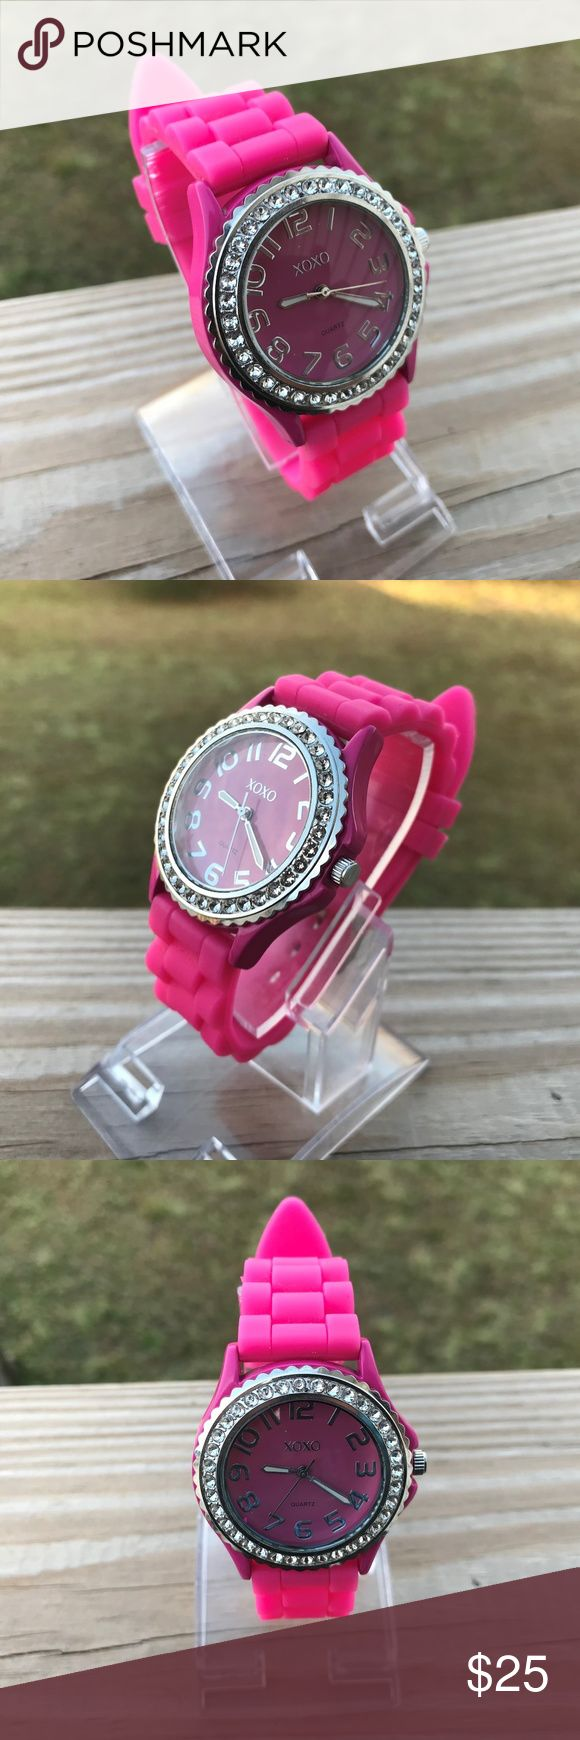 XOXO Ladies Watch Pink Silicon Rubber Band Analog XOXO Ladies Watch Pink Silicon Rubber Band Women Fancy Analog Wrist Watch  Band: XOXO  Color: Pink + Silver  Size: belt ( adjustable )  Pre-owned: never used, look like new. XOXO Accessories Watches